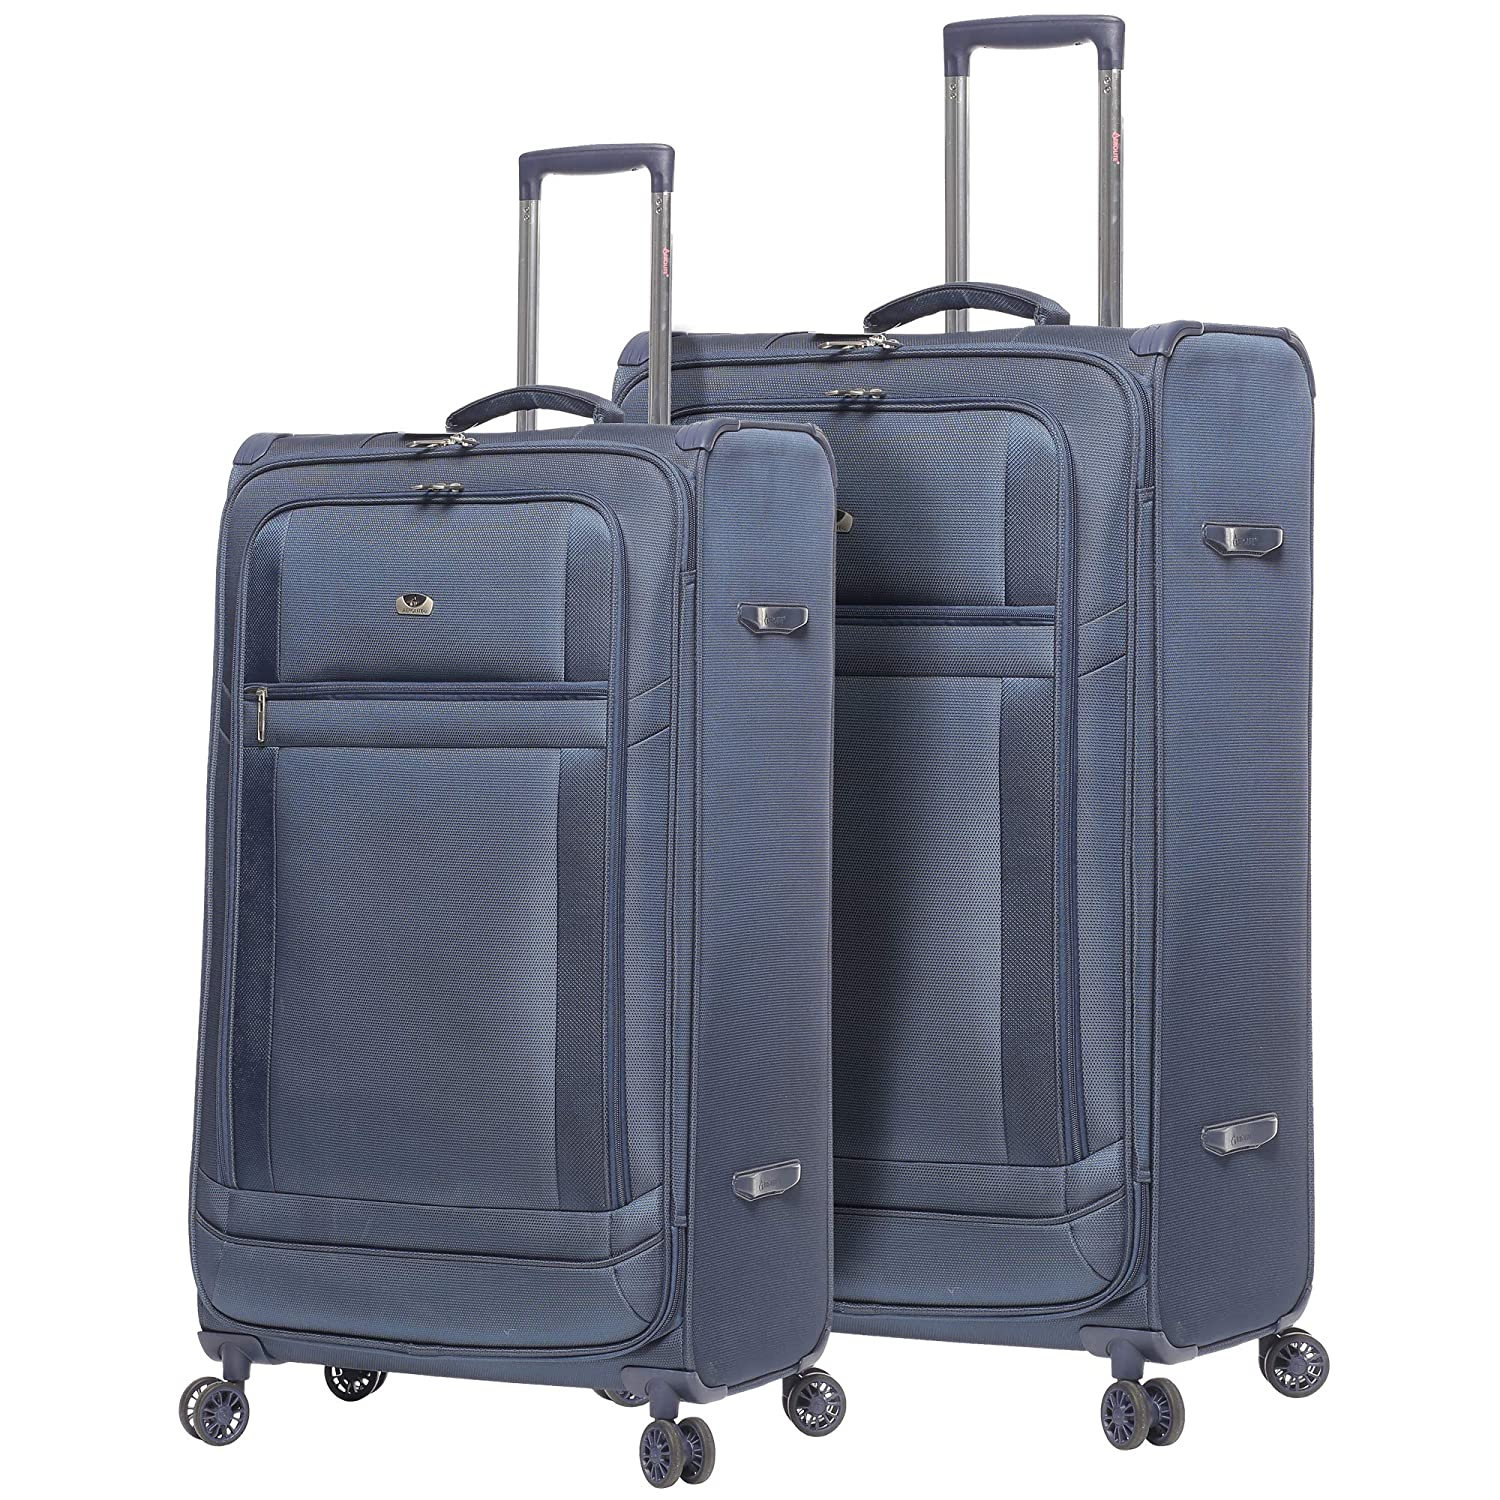 Lightweight Large Luggage Sets 2 piece 32inch 29 inch , Reinforced  Suitcases Set (Navy)